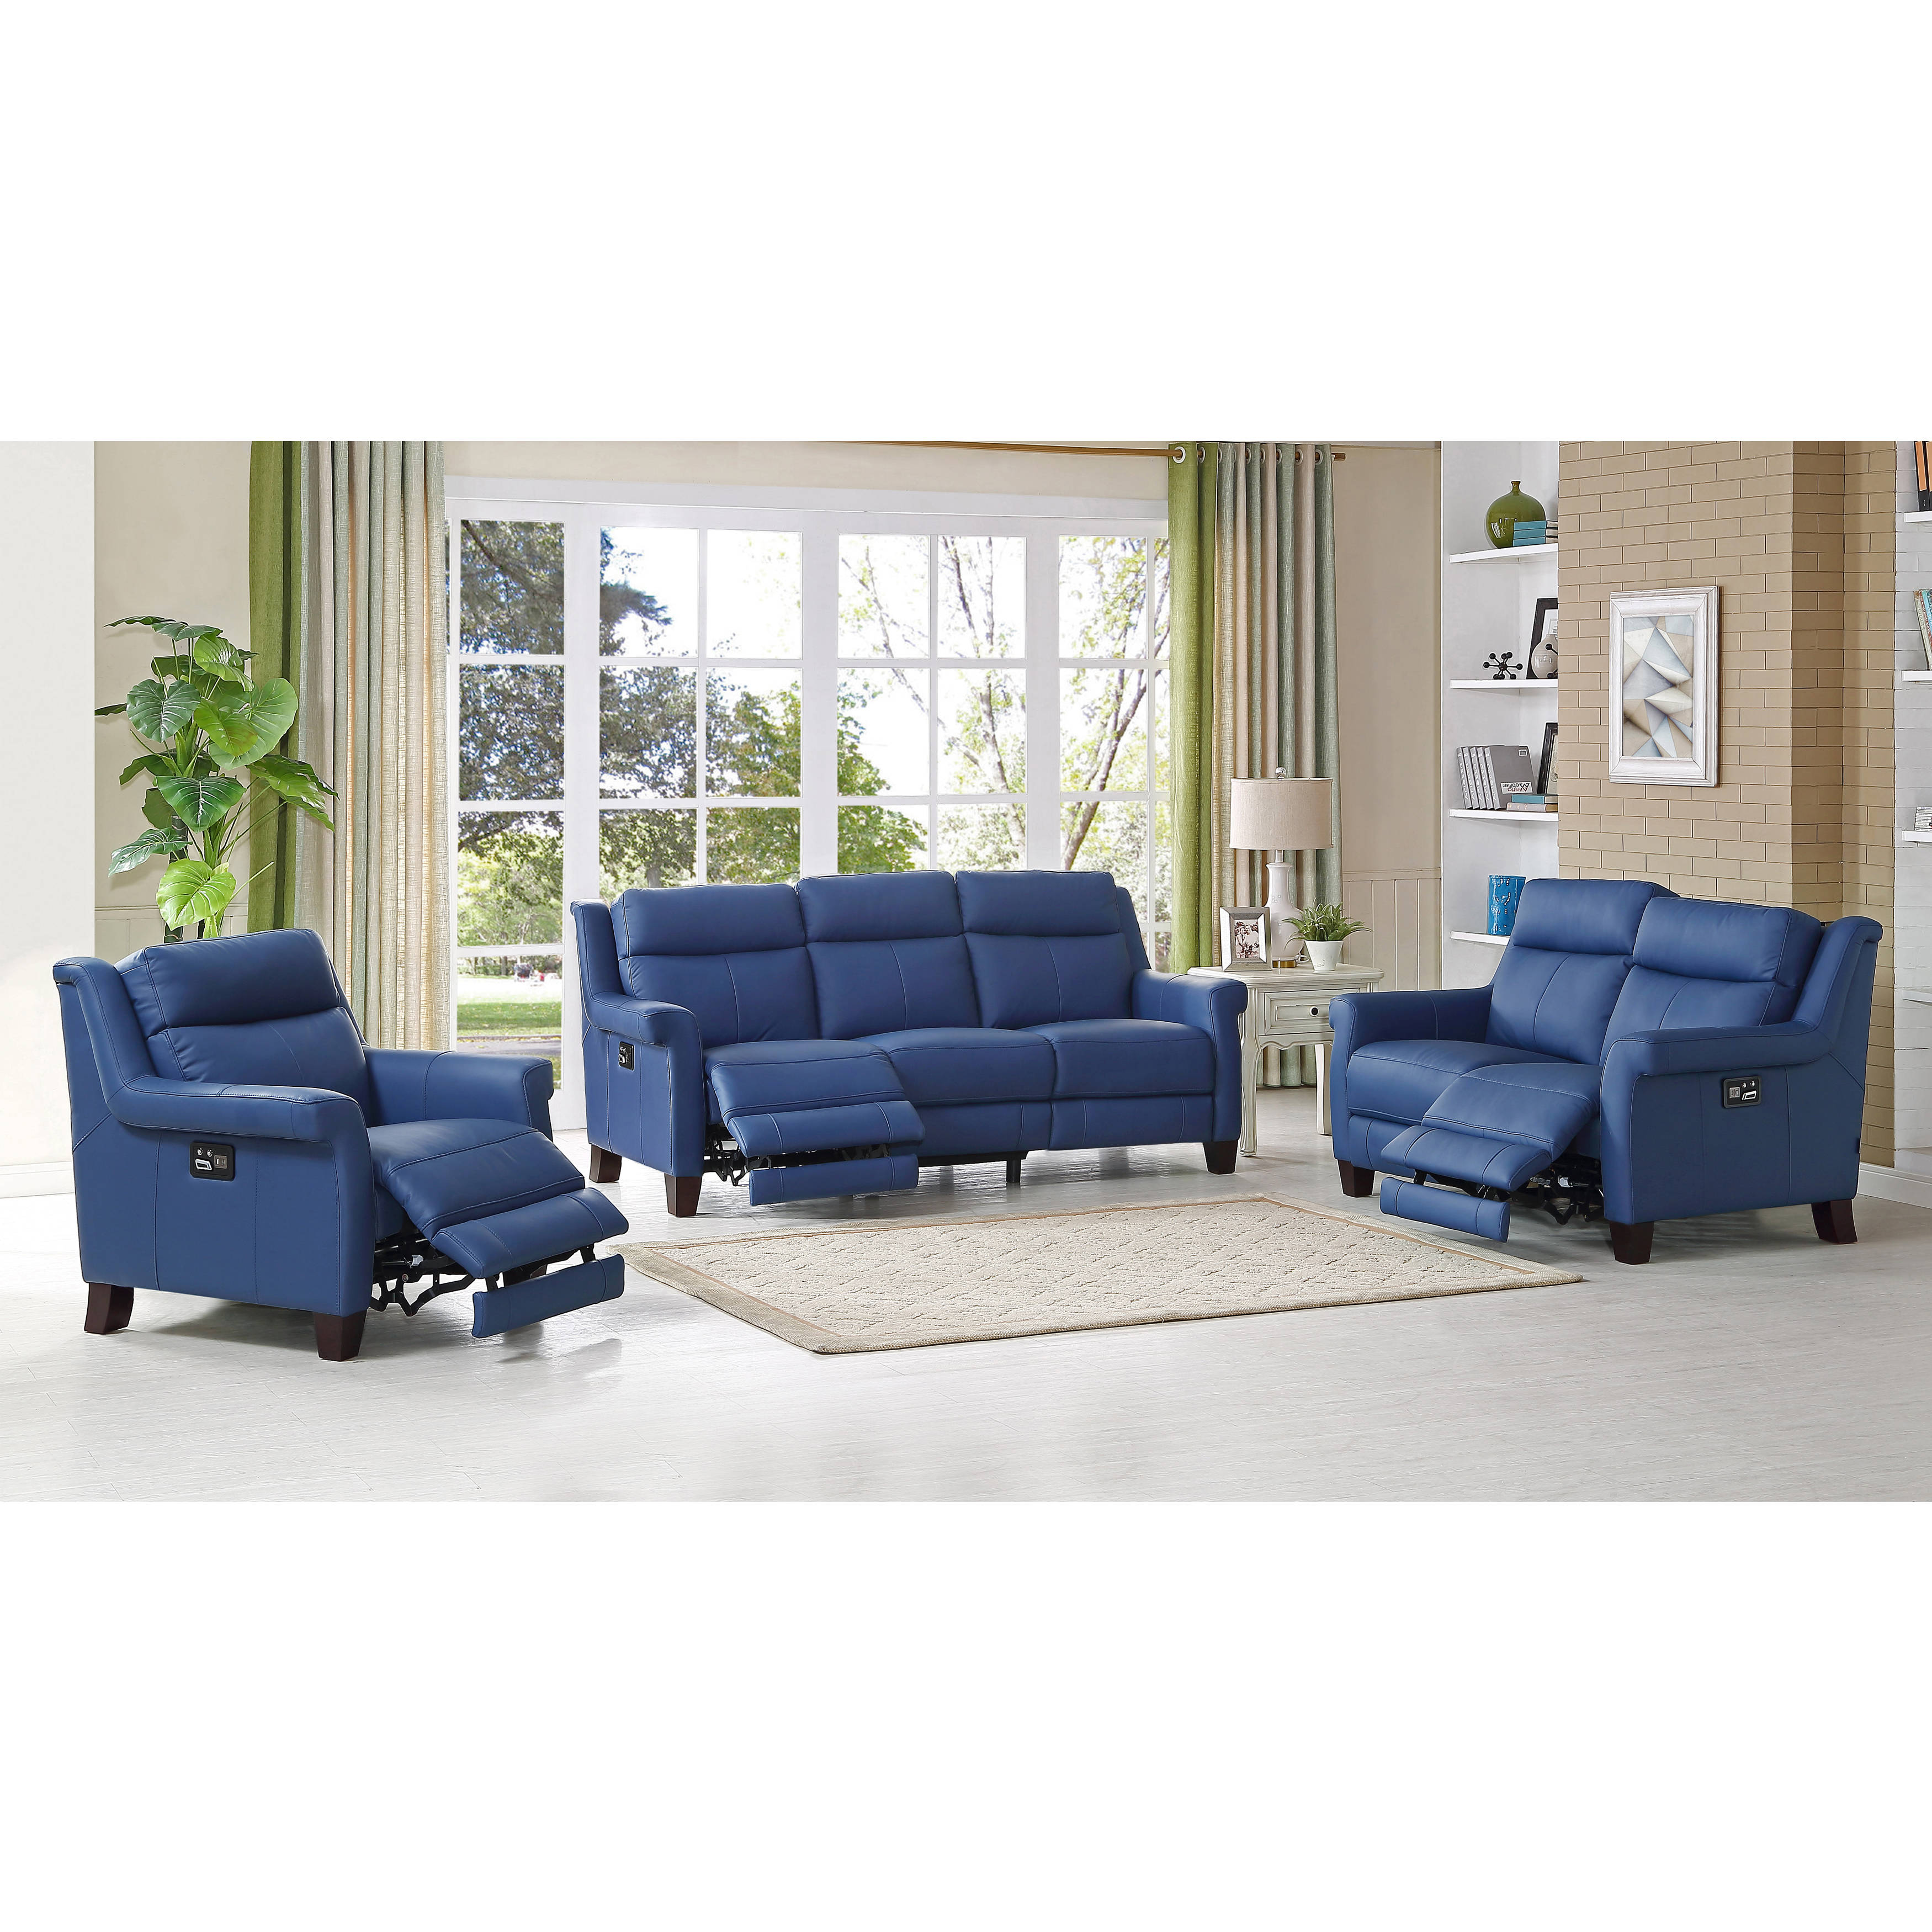 Amax Leather Dolce Blue Power Reclining 3pc Living Room Set | The Classy  Home